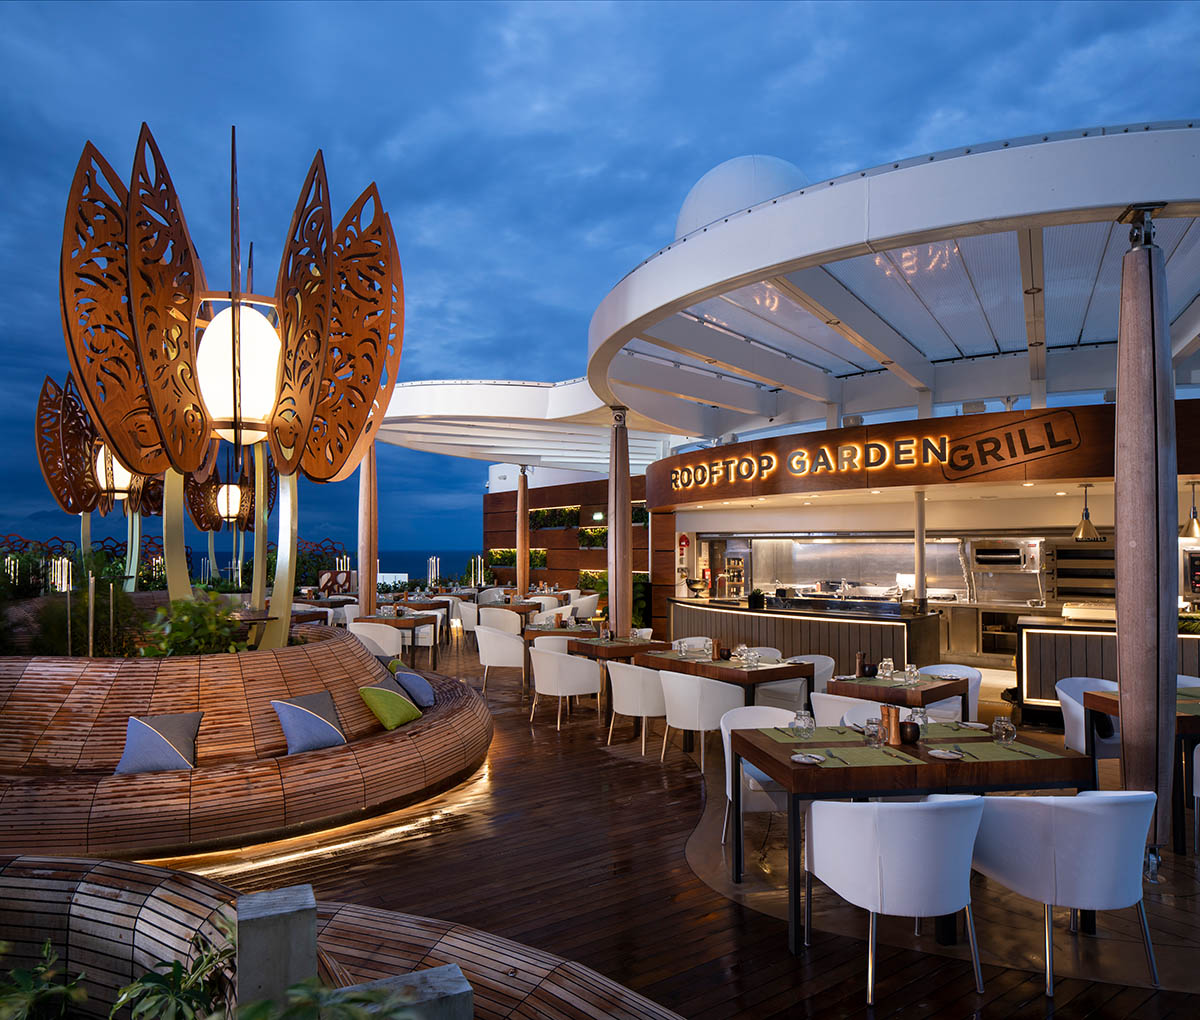 Rooftop Garden Grill Celebrity Cruises